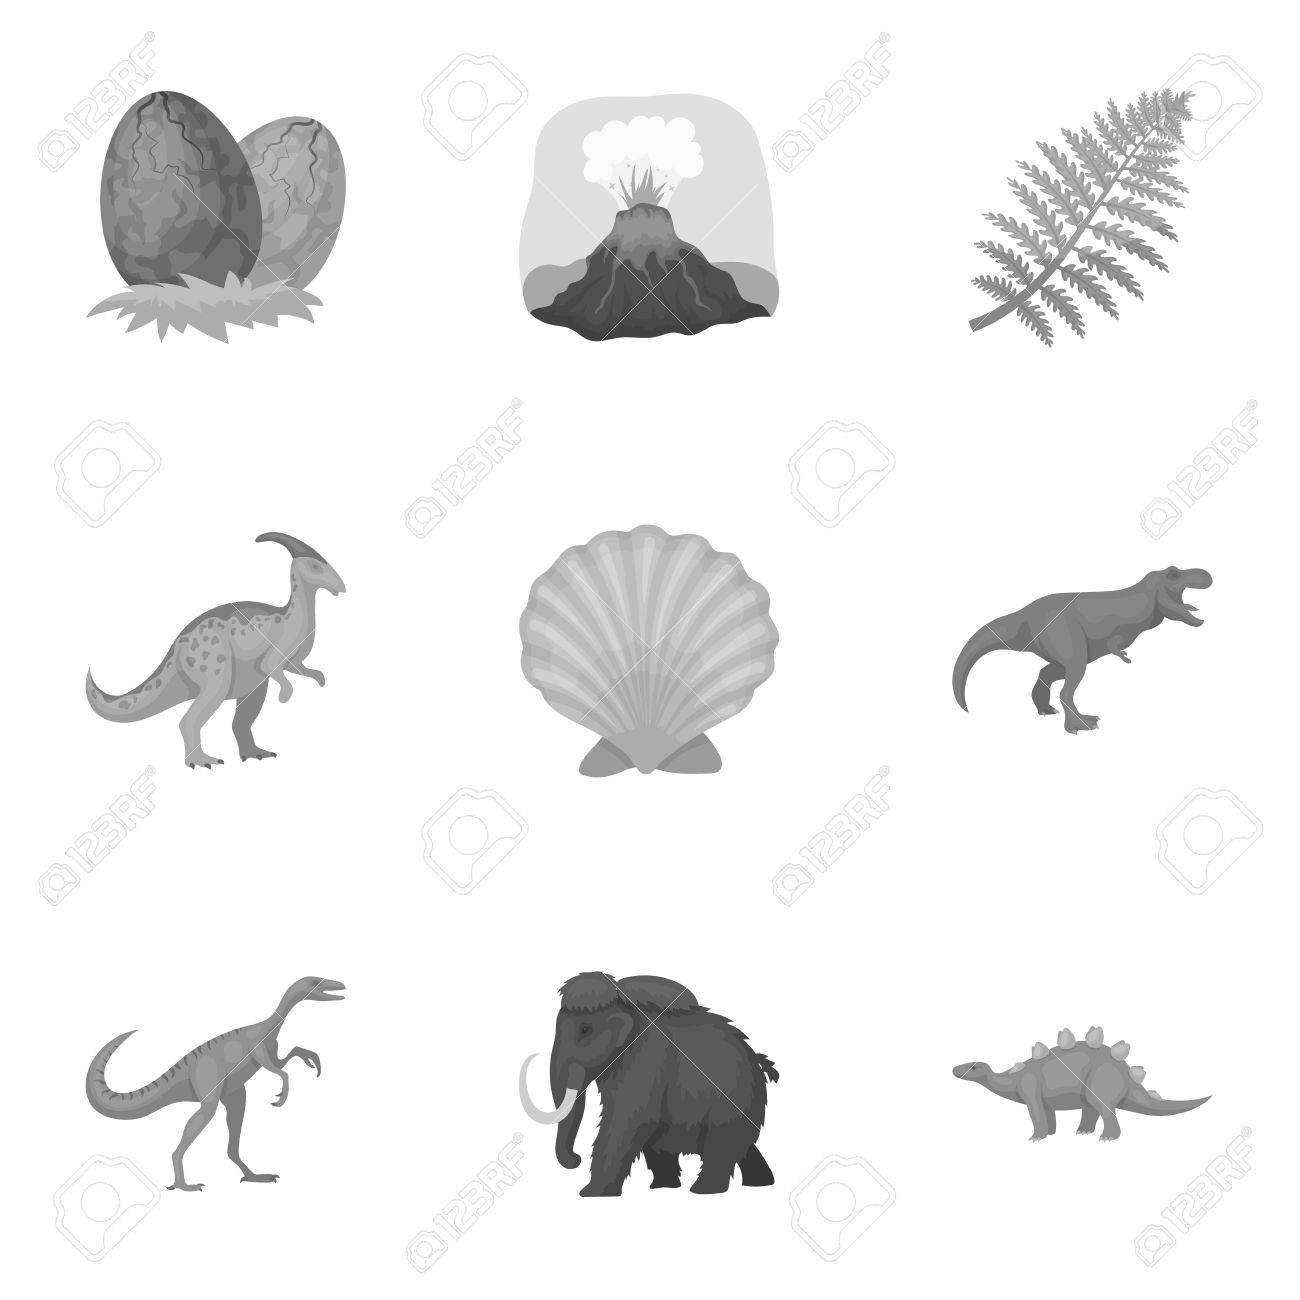 Image of: Glad Ancient Extinct Animals And Their Tracks And Remains Dinosaurs Tyrannosaurs Pnictosaursdinisaurs 123rfcom Ancient Extinct Animals And Their Tracks And Remains Dinosaurs